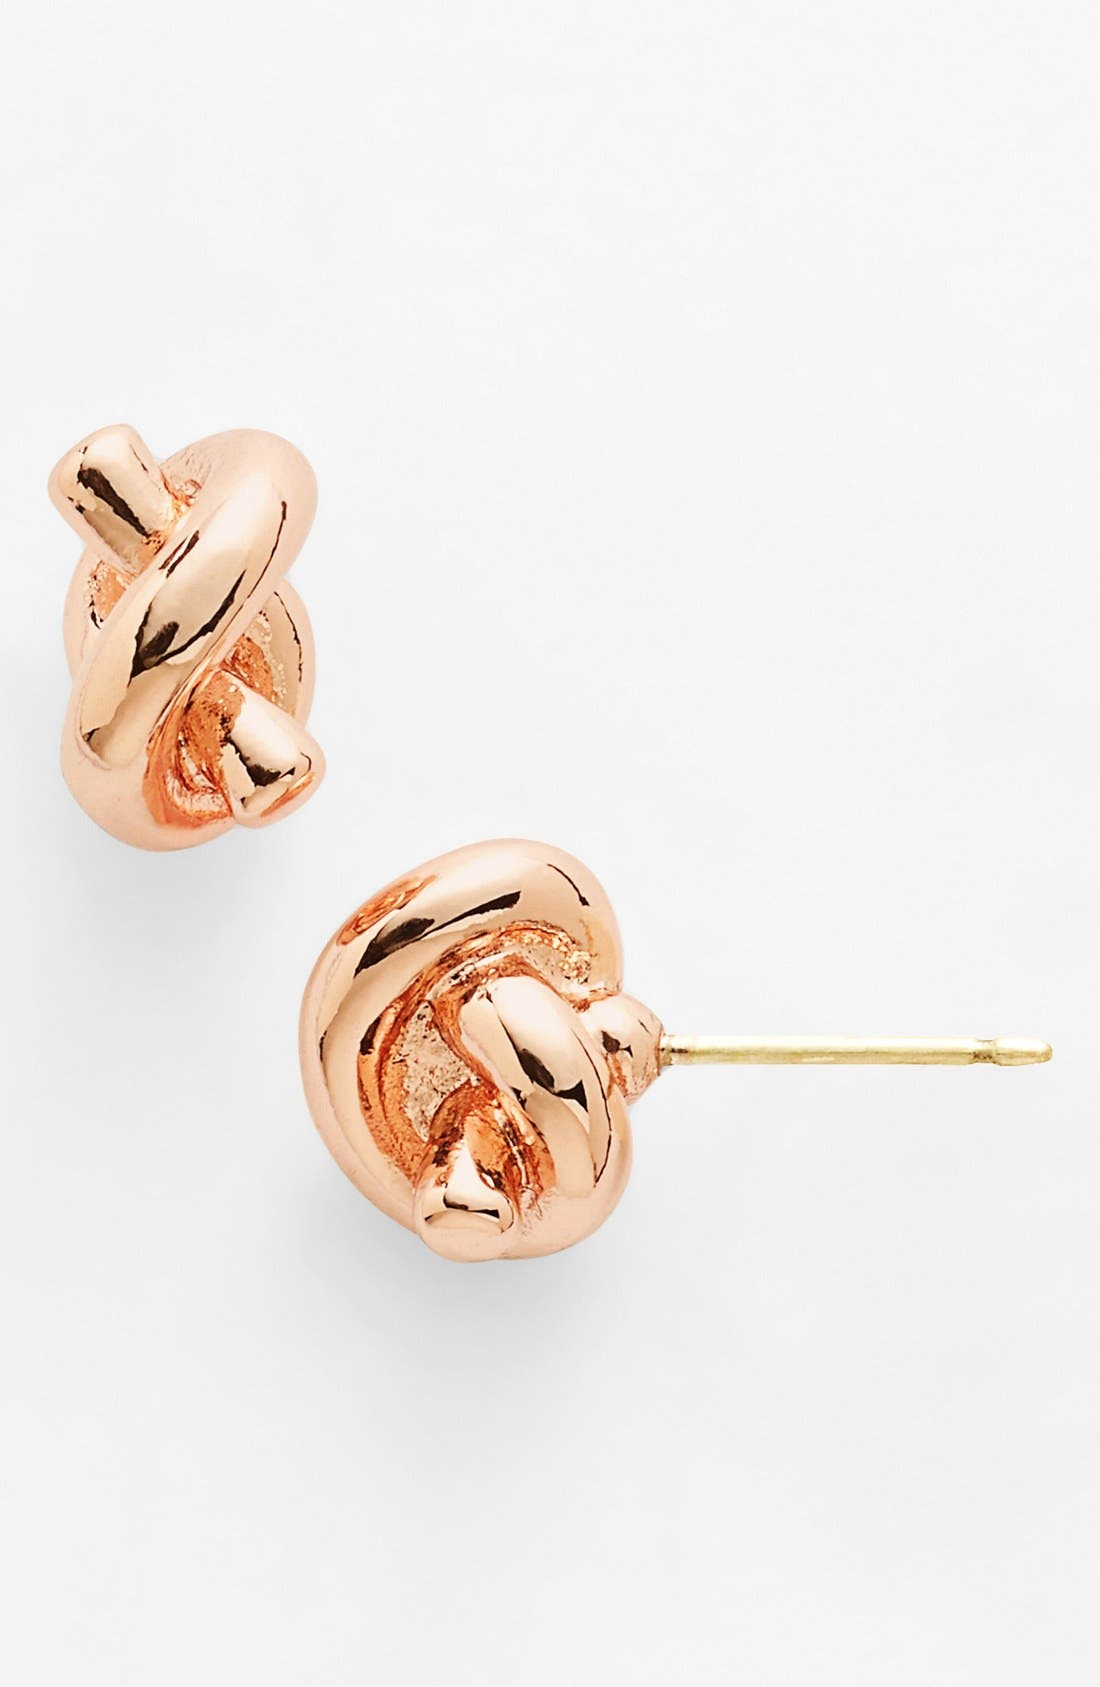 KATE SPADE NEW YORK,                             'sailors knot' mini stud earrings,                             Main thumbnail 1, color,                             ROSE GOLD